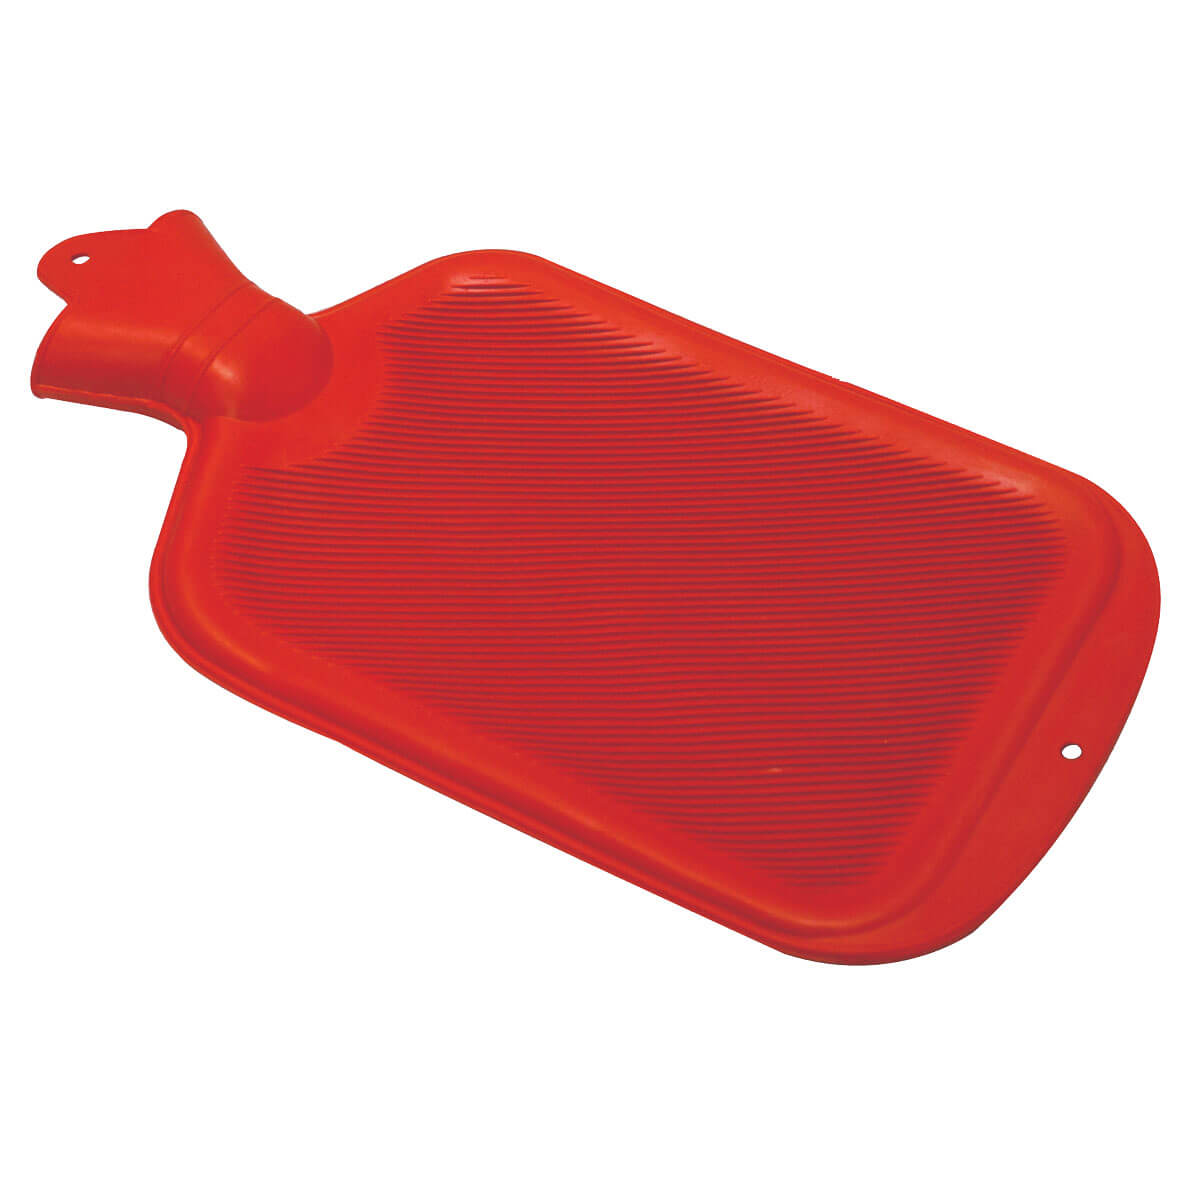 Relief Pak® Hot Water Bottle - 2 Quart Capacity